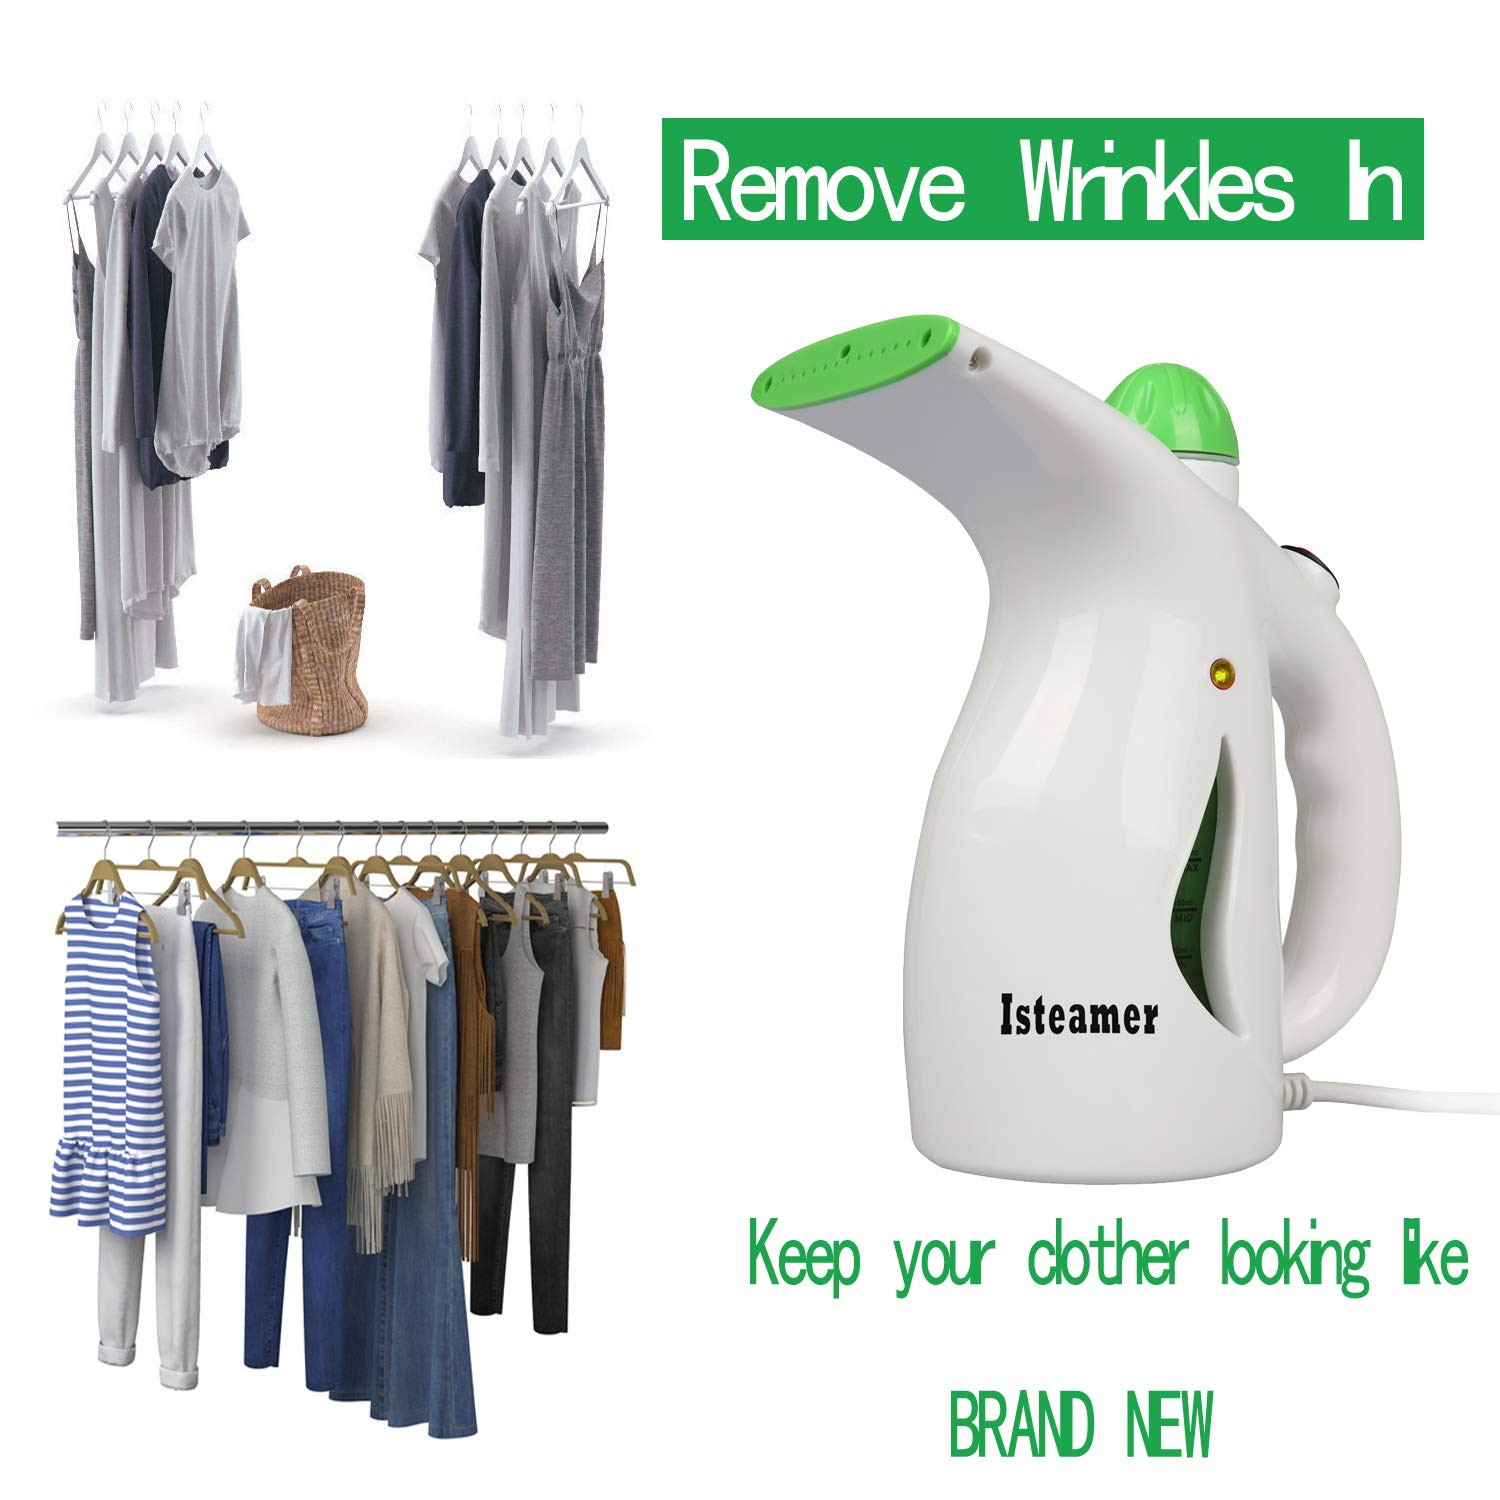 Compact-Travel//Home. Handheld Travel Iron Steamer Wrinkle Remover for Clothes Garment Fabric Steamer Clean Sterilize with Free Travel Hanger and Soft Fabric 4-in-1 Powerful Iron Steamer Portable